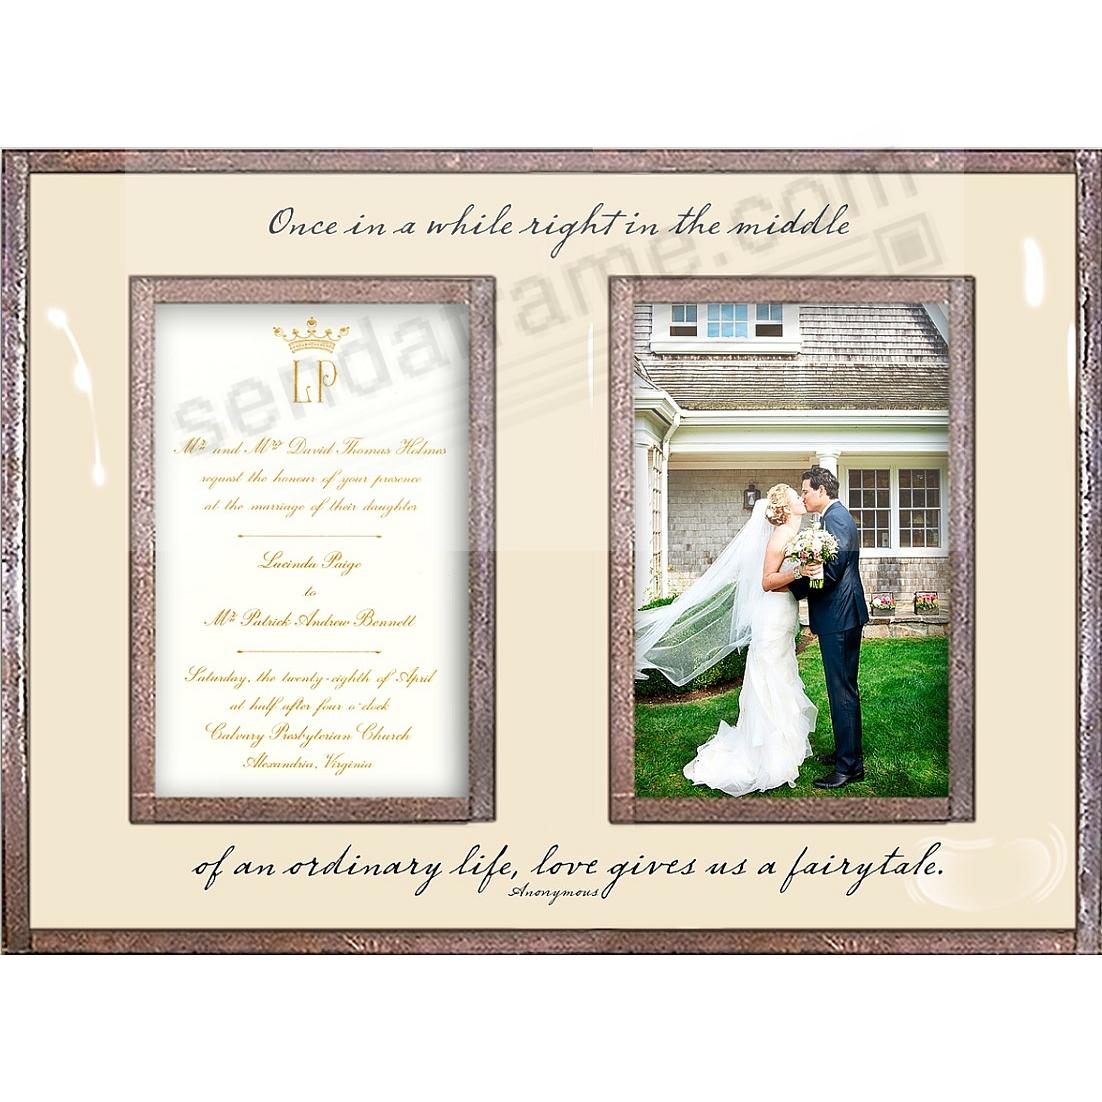 ONCE IN A WHILE ... LOVE GIVES US A FAIRYTALE Copper + Clear Glass Double Invitation Frame by Ben's Garden®